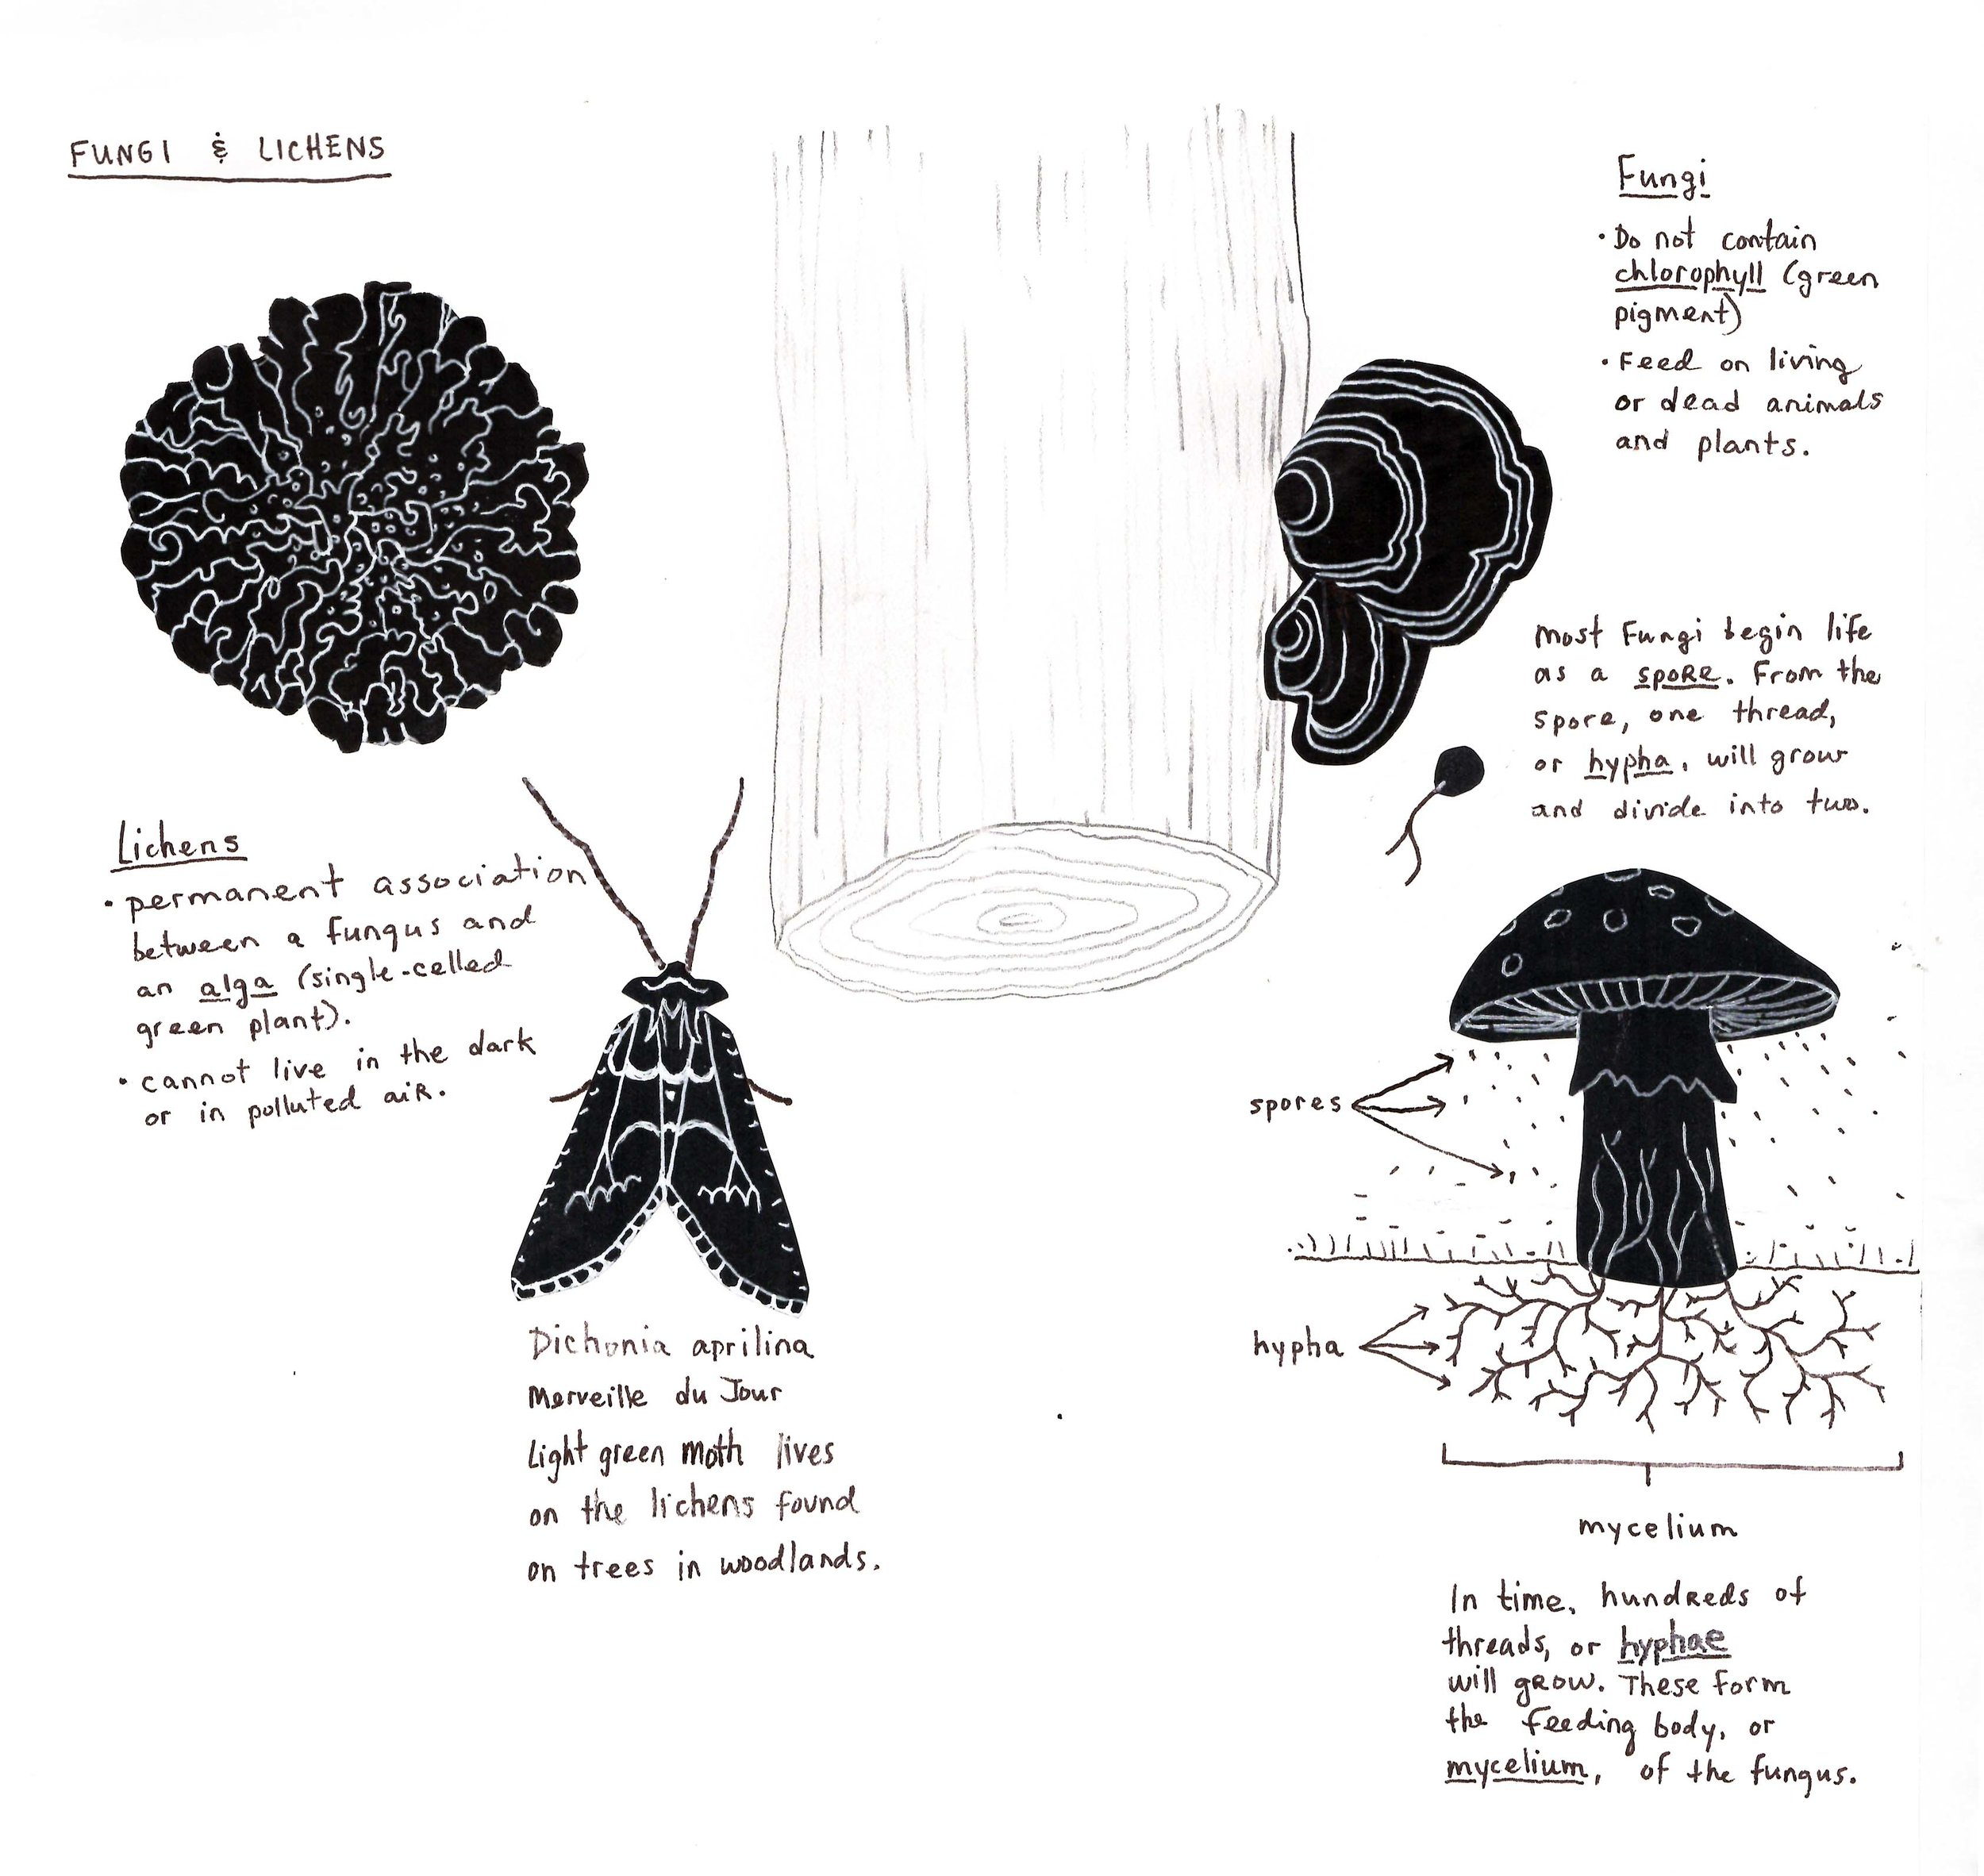 Notes on lichens and fungi.